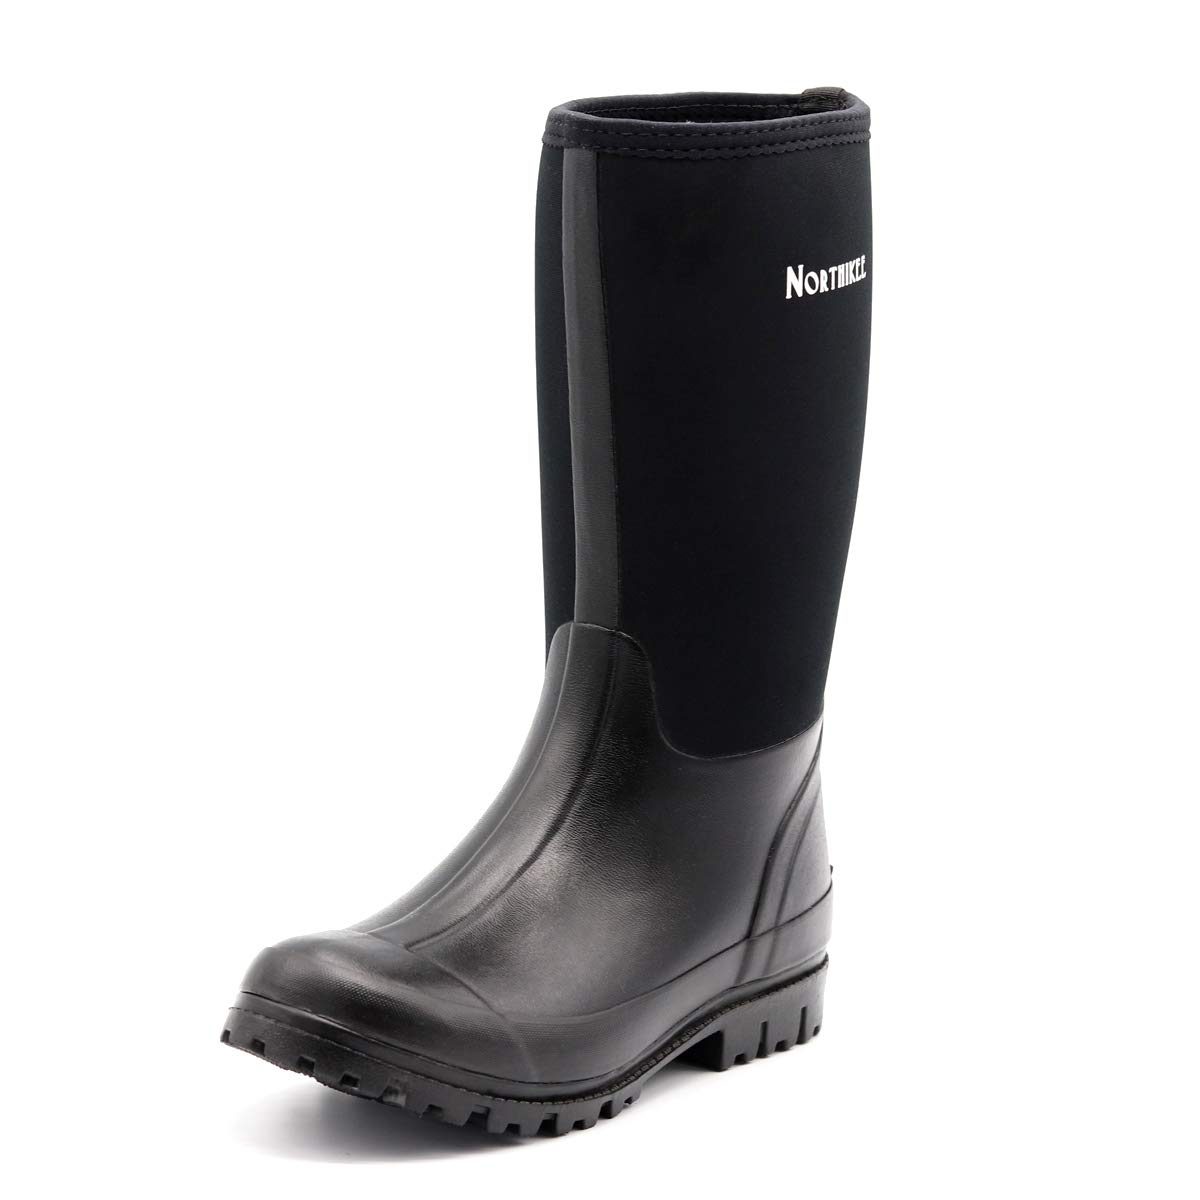 Northikee Men's Rain Boots Rubber Hunting Insulated Waterproof Slip Resistant Neoprene Black Outdoor Snow Durable Boots